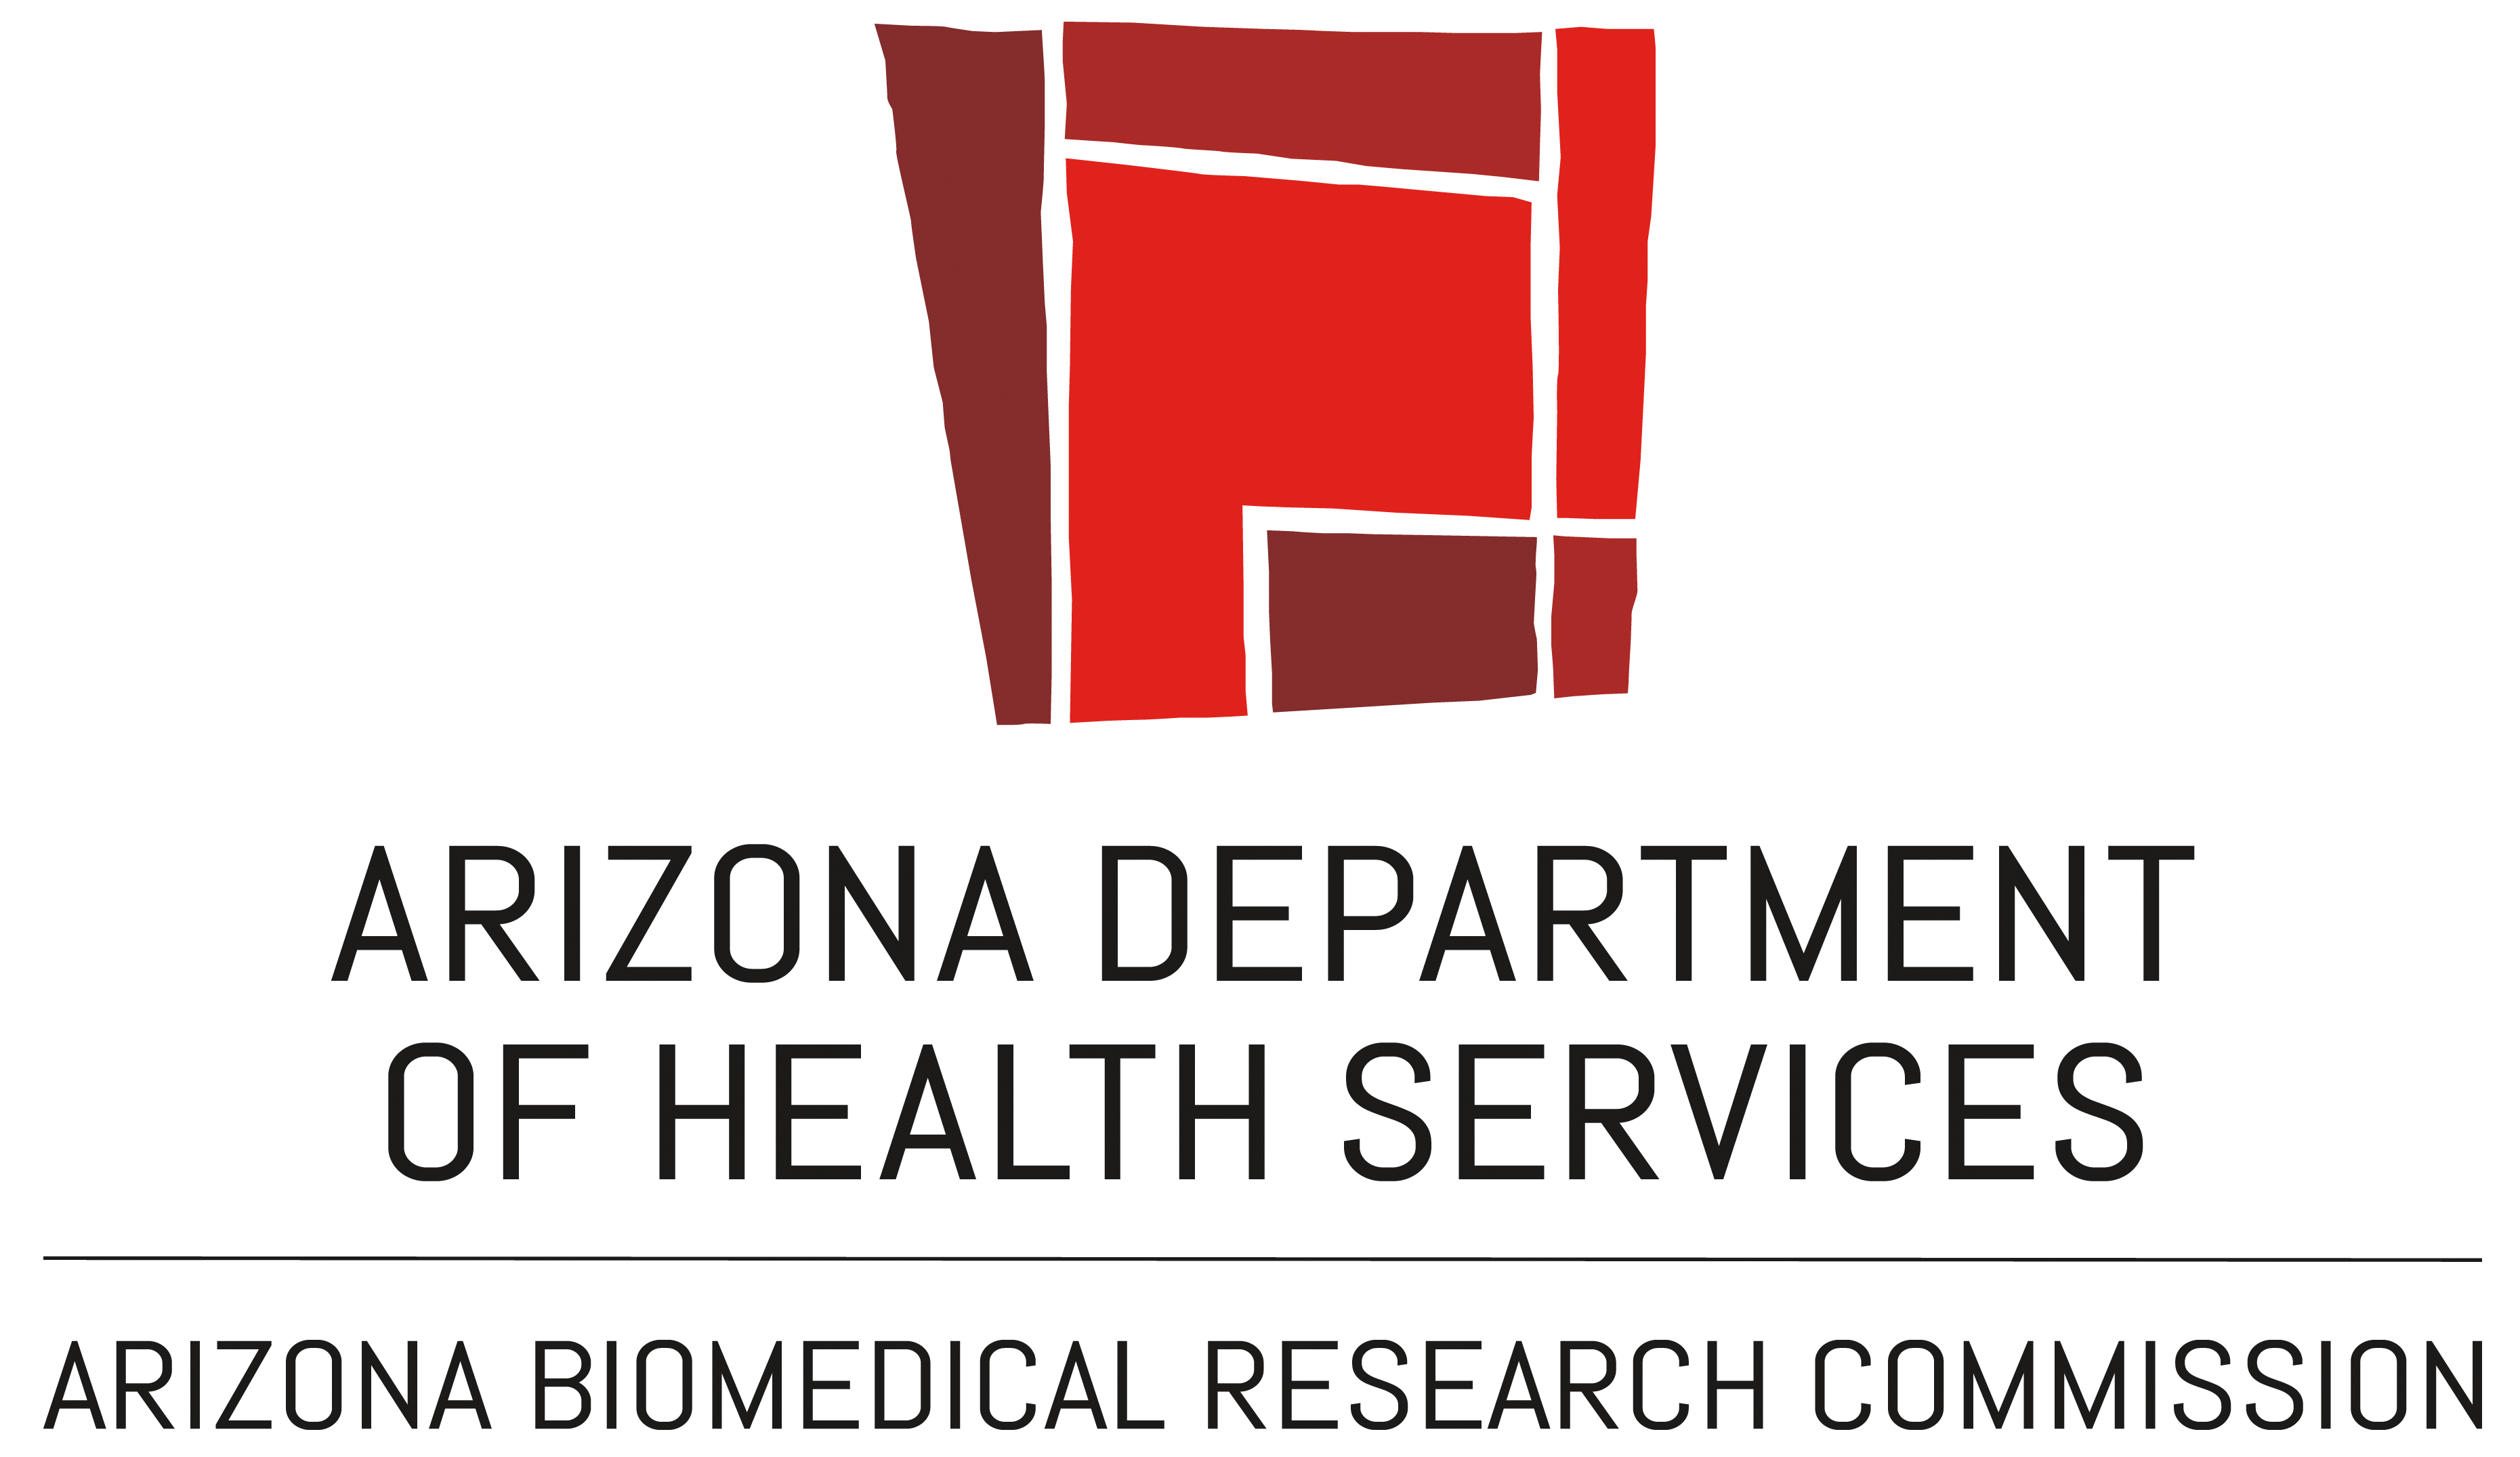 Arizona Department of Health Services Information